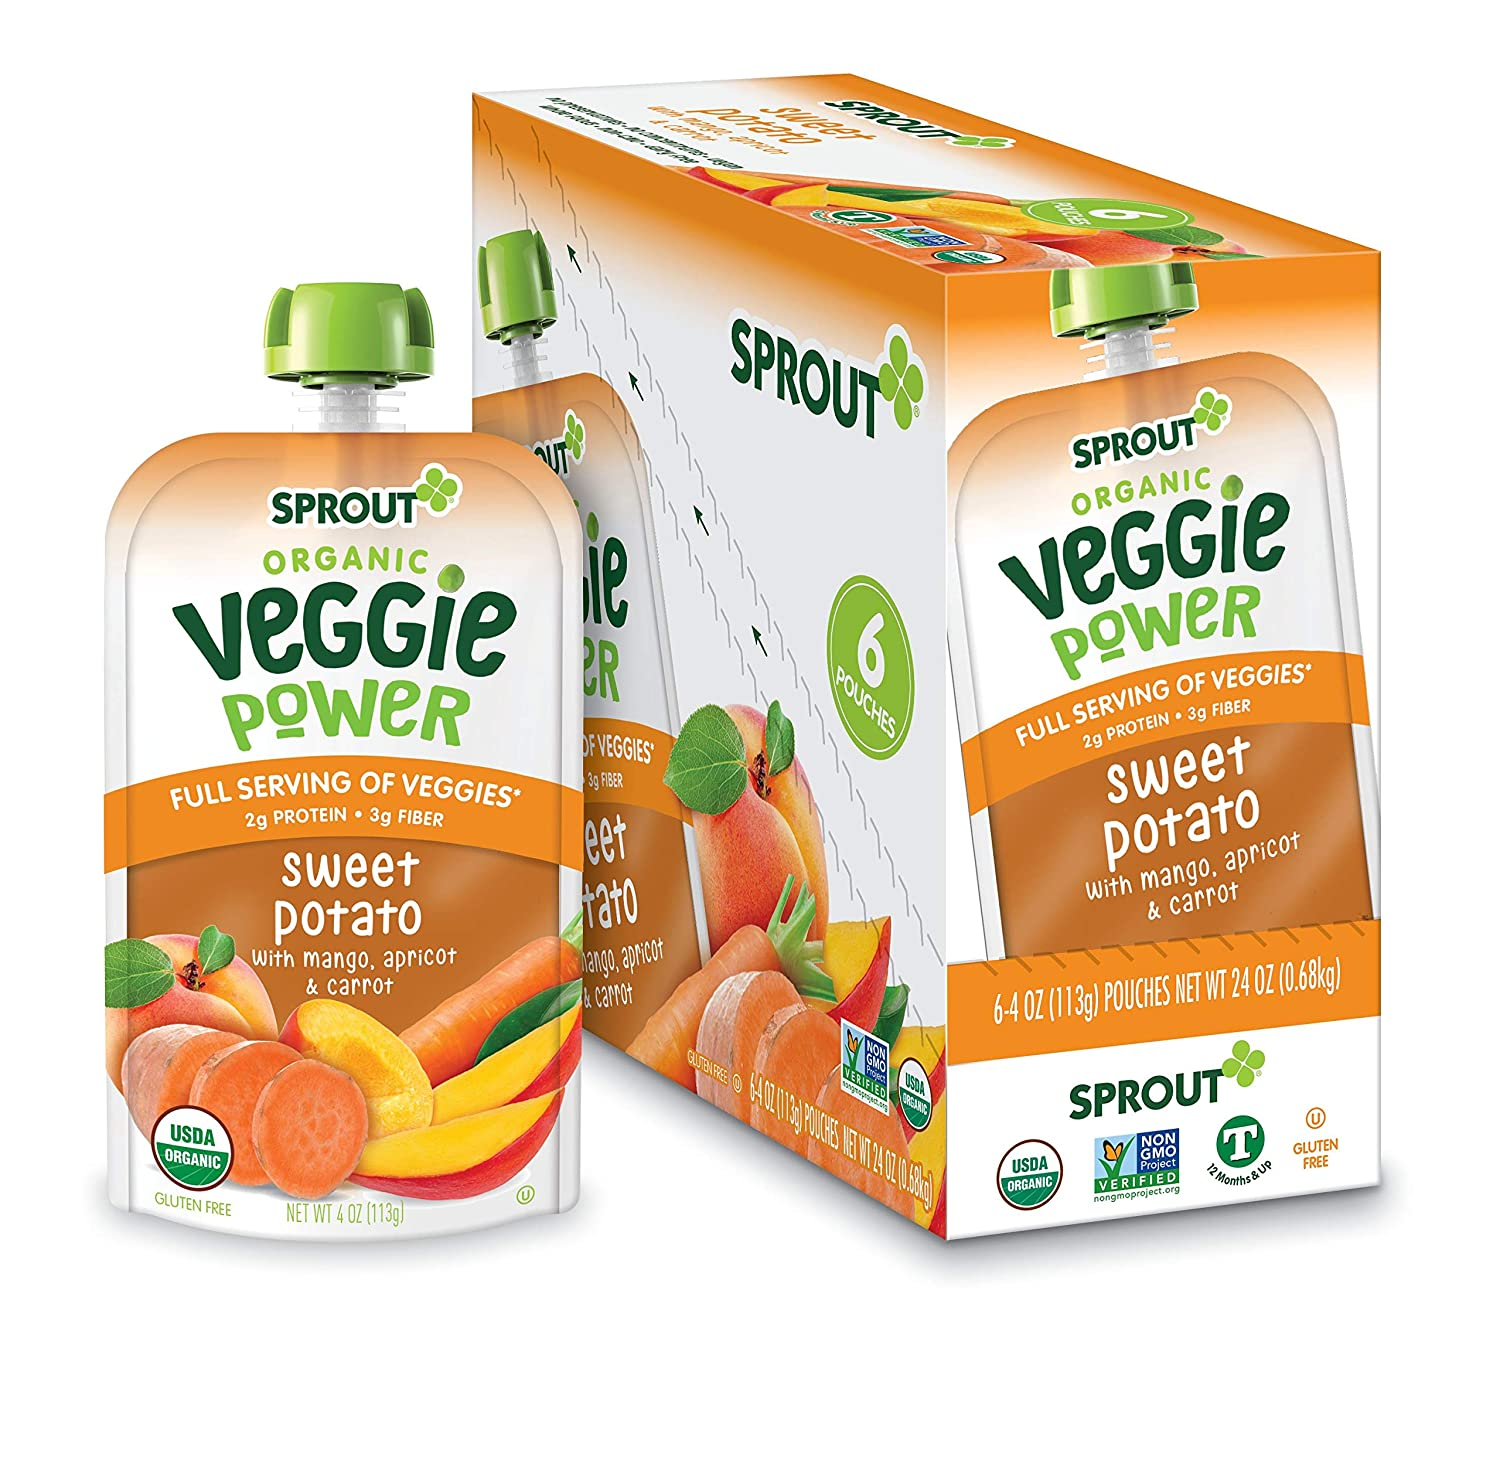 Sprout Organic Baby Food Toddler Veggie Power Pouches Stage 4, Sweet Potato with Mango, Apricot and Carrot, 4 Ounce Pouches (Pack of 12)